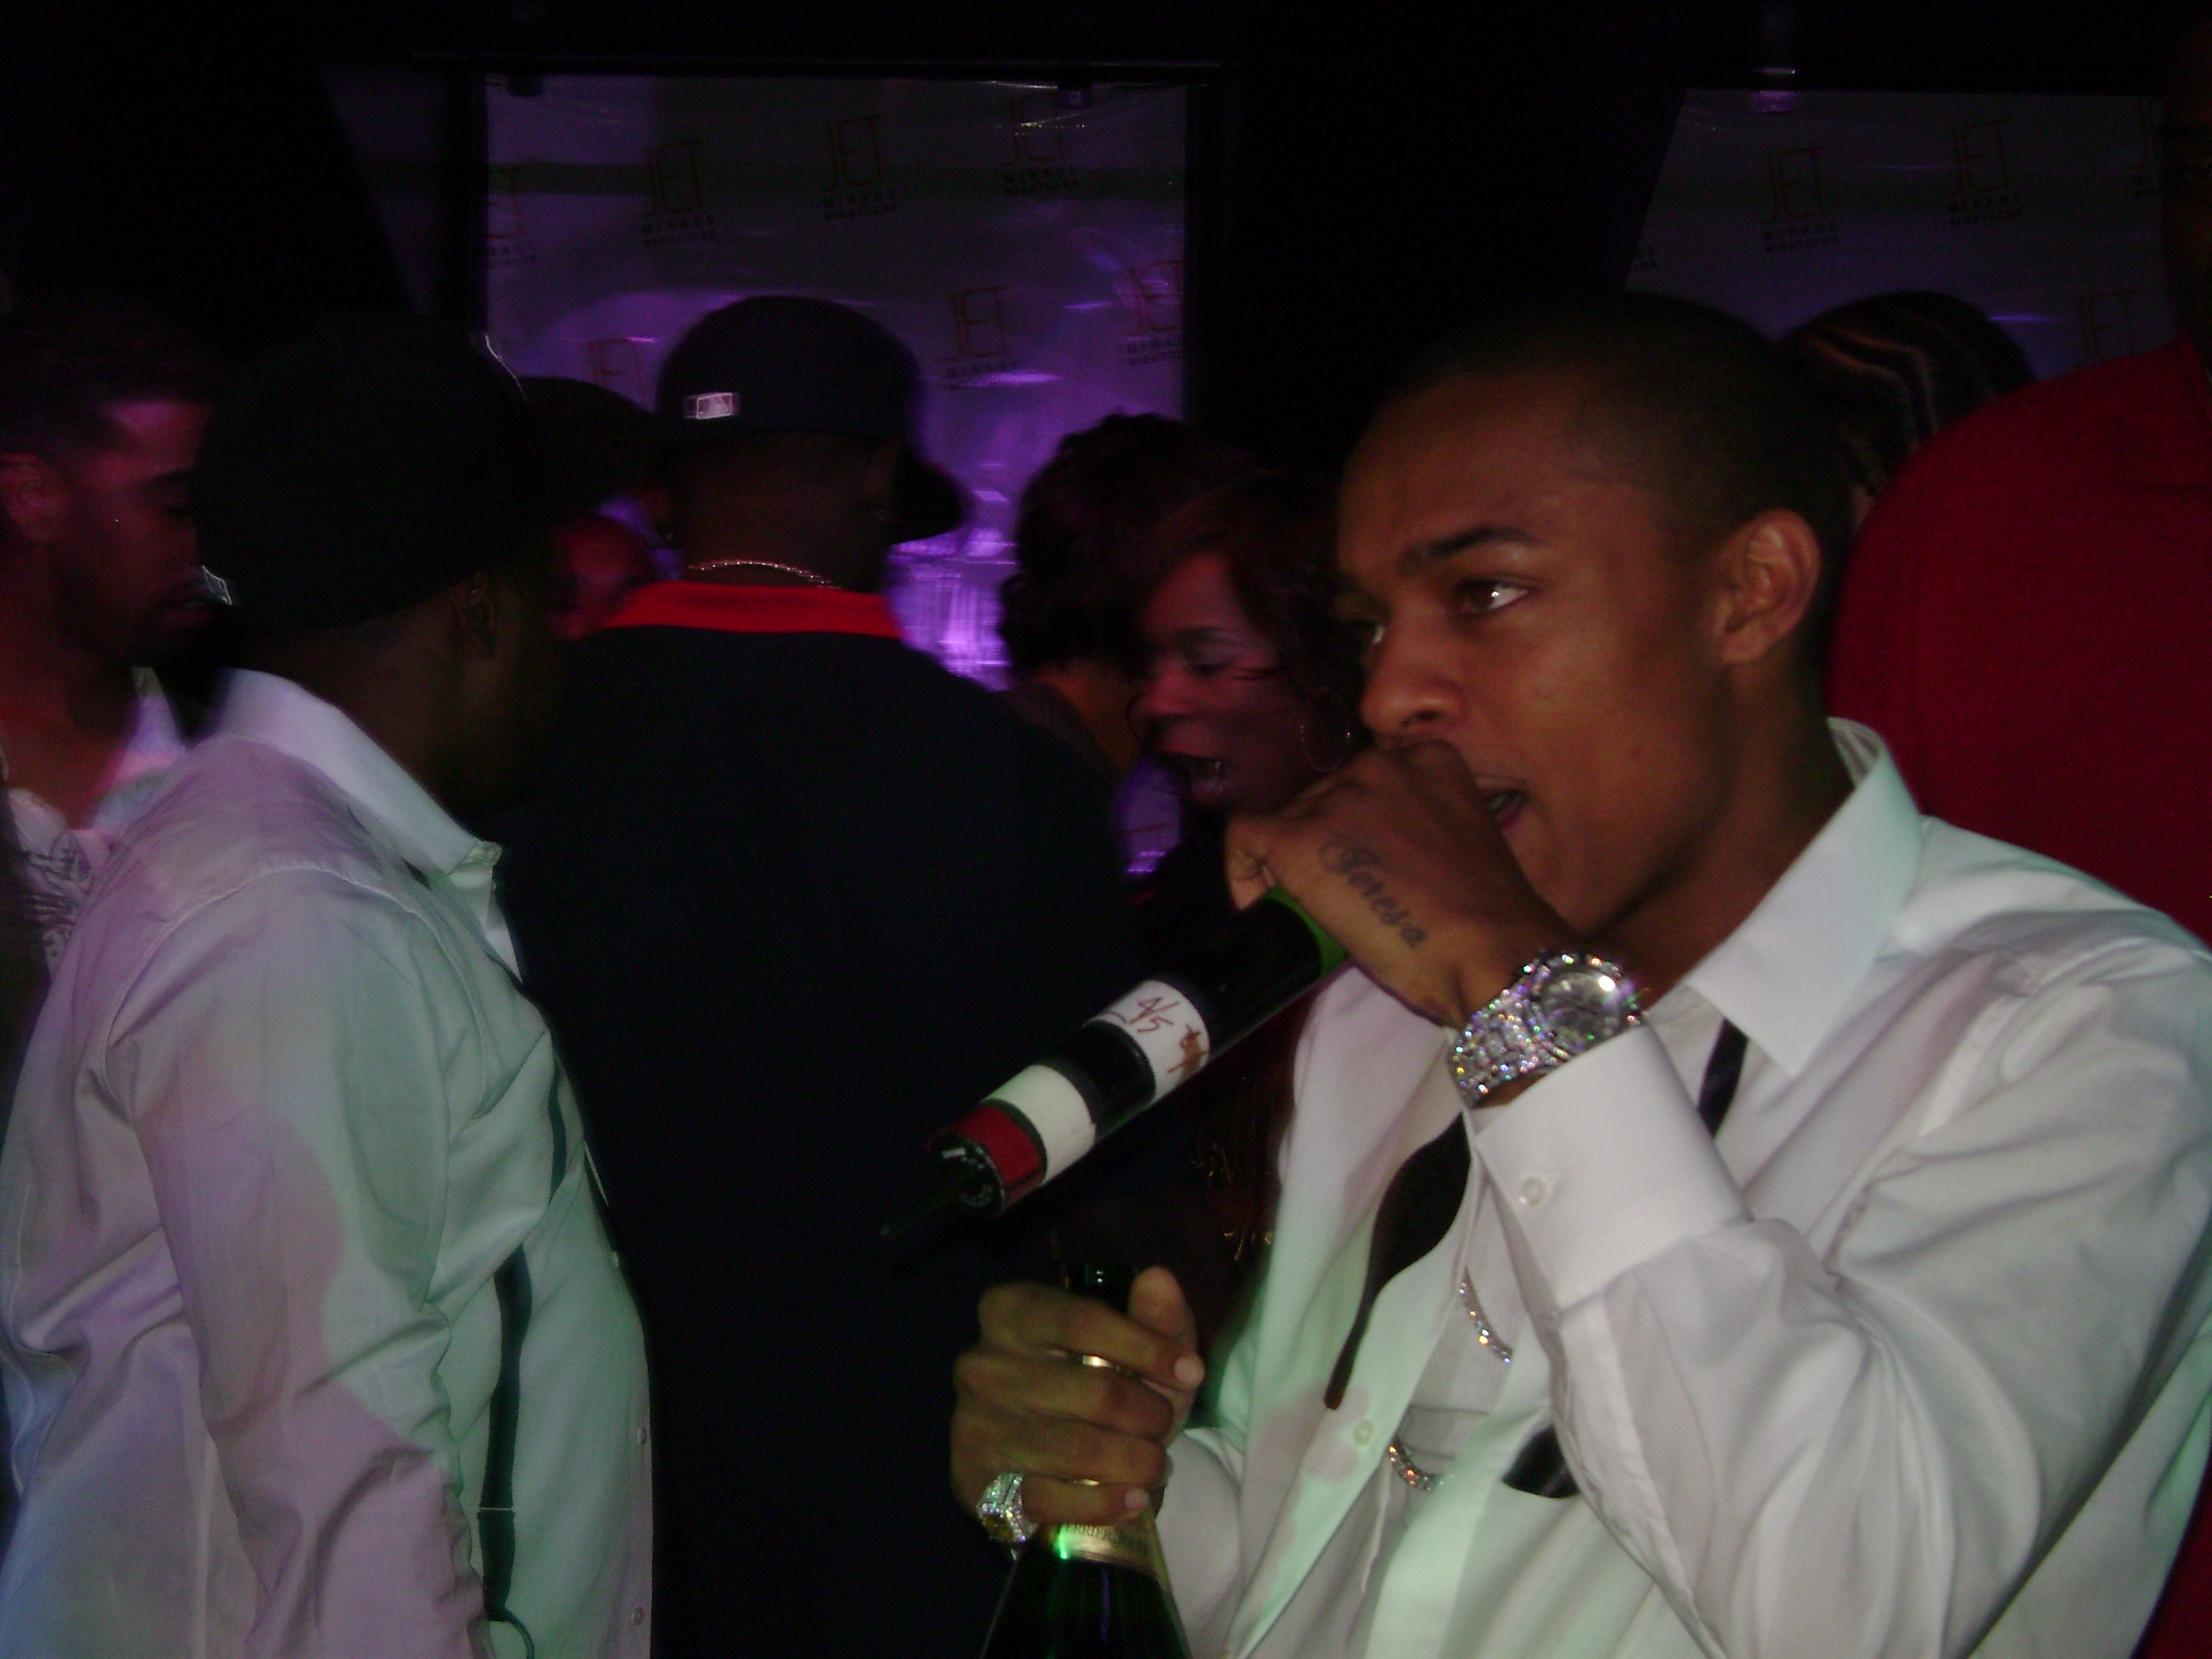 DJ Quick Djing In Las Vegas For Bow Wow's 21st B.D. Pic 2